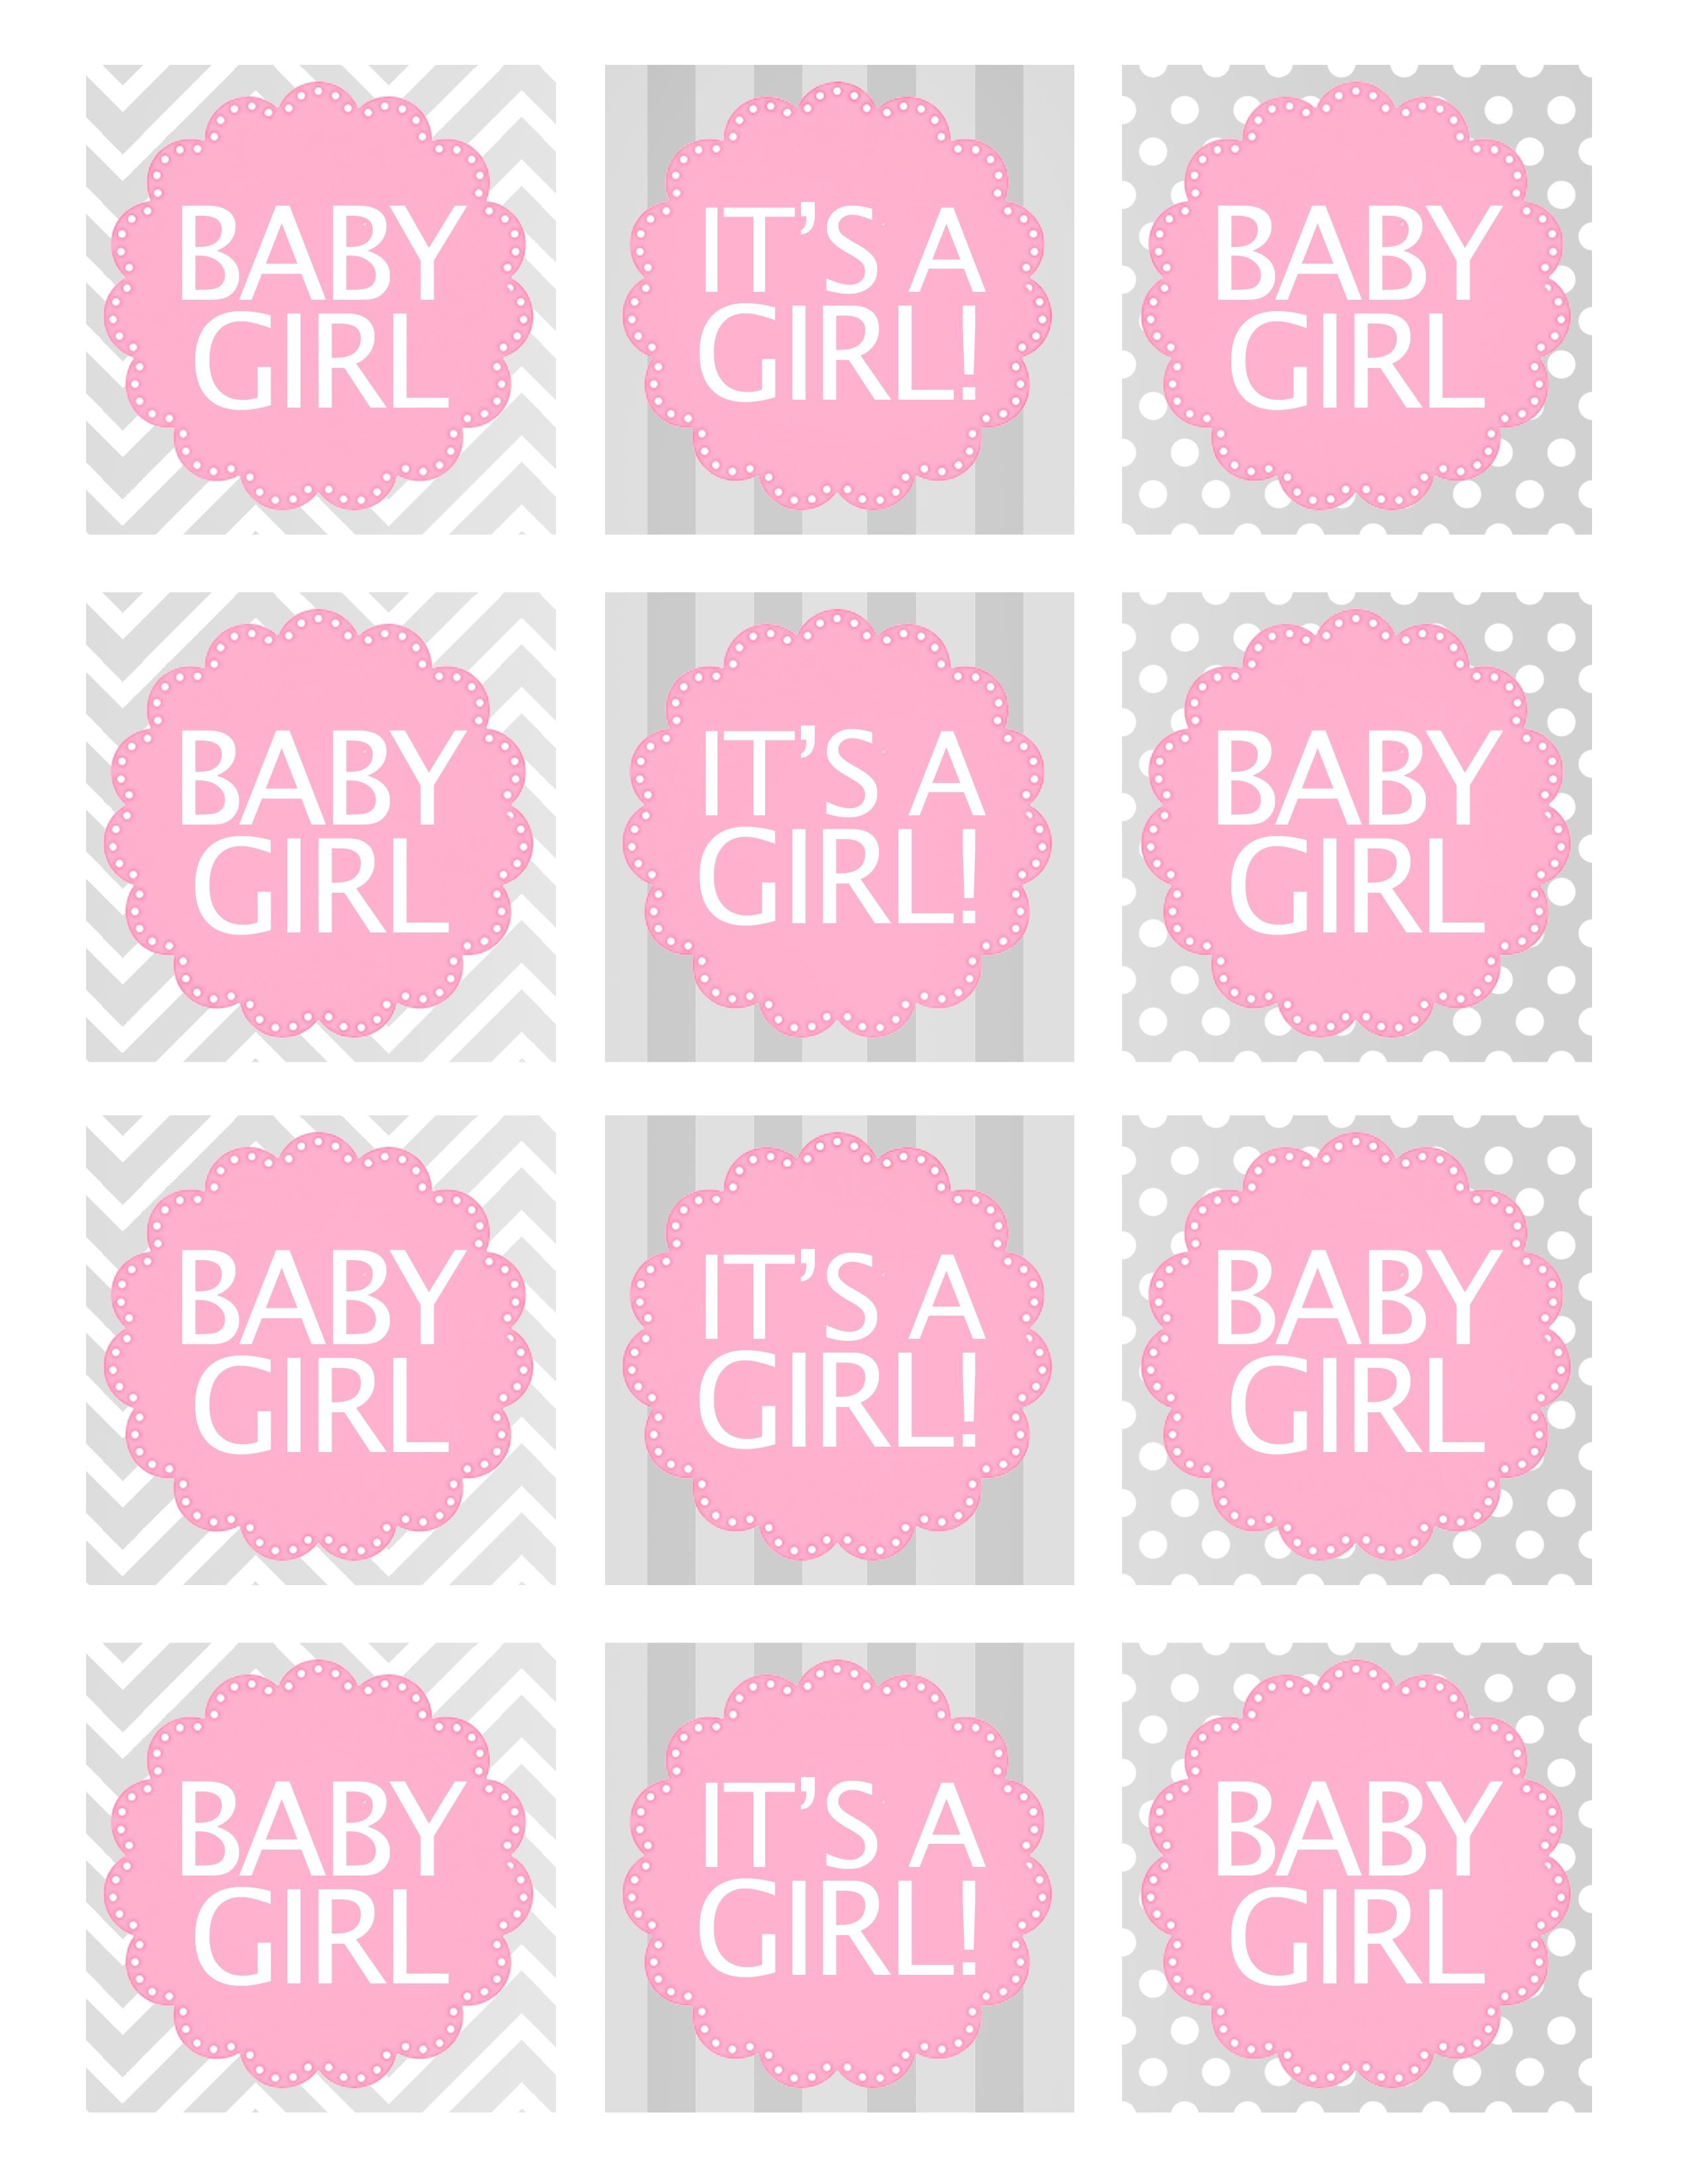 Baby Girl Shower Free Printables | Baby Shower Ideas | Baby Shower - Free Printable Baby Shower Favor Tags